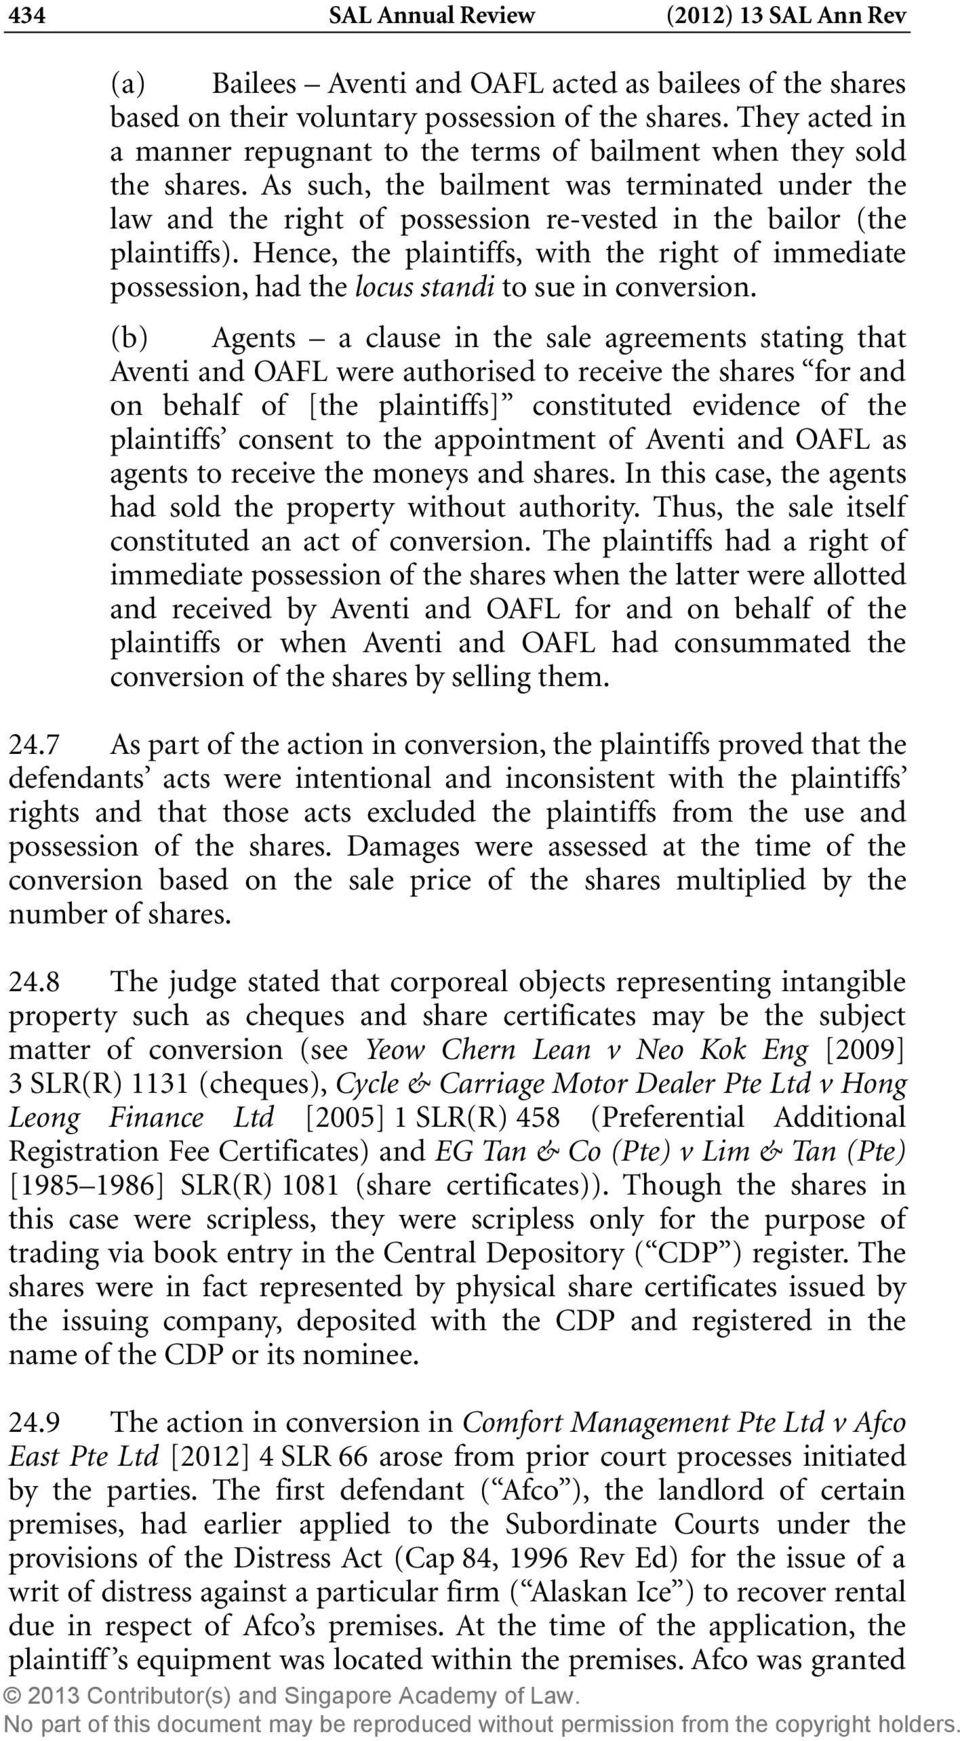 As such, the bailment was terminated under the law and the right of possession re-vested in the bailor (the plaintiffs).